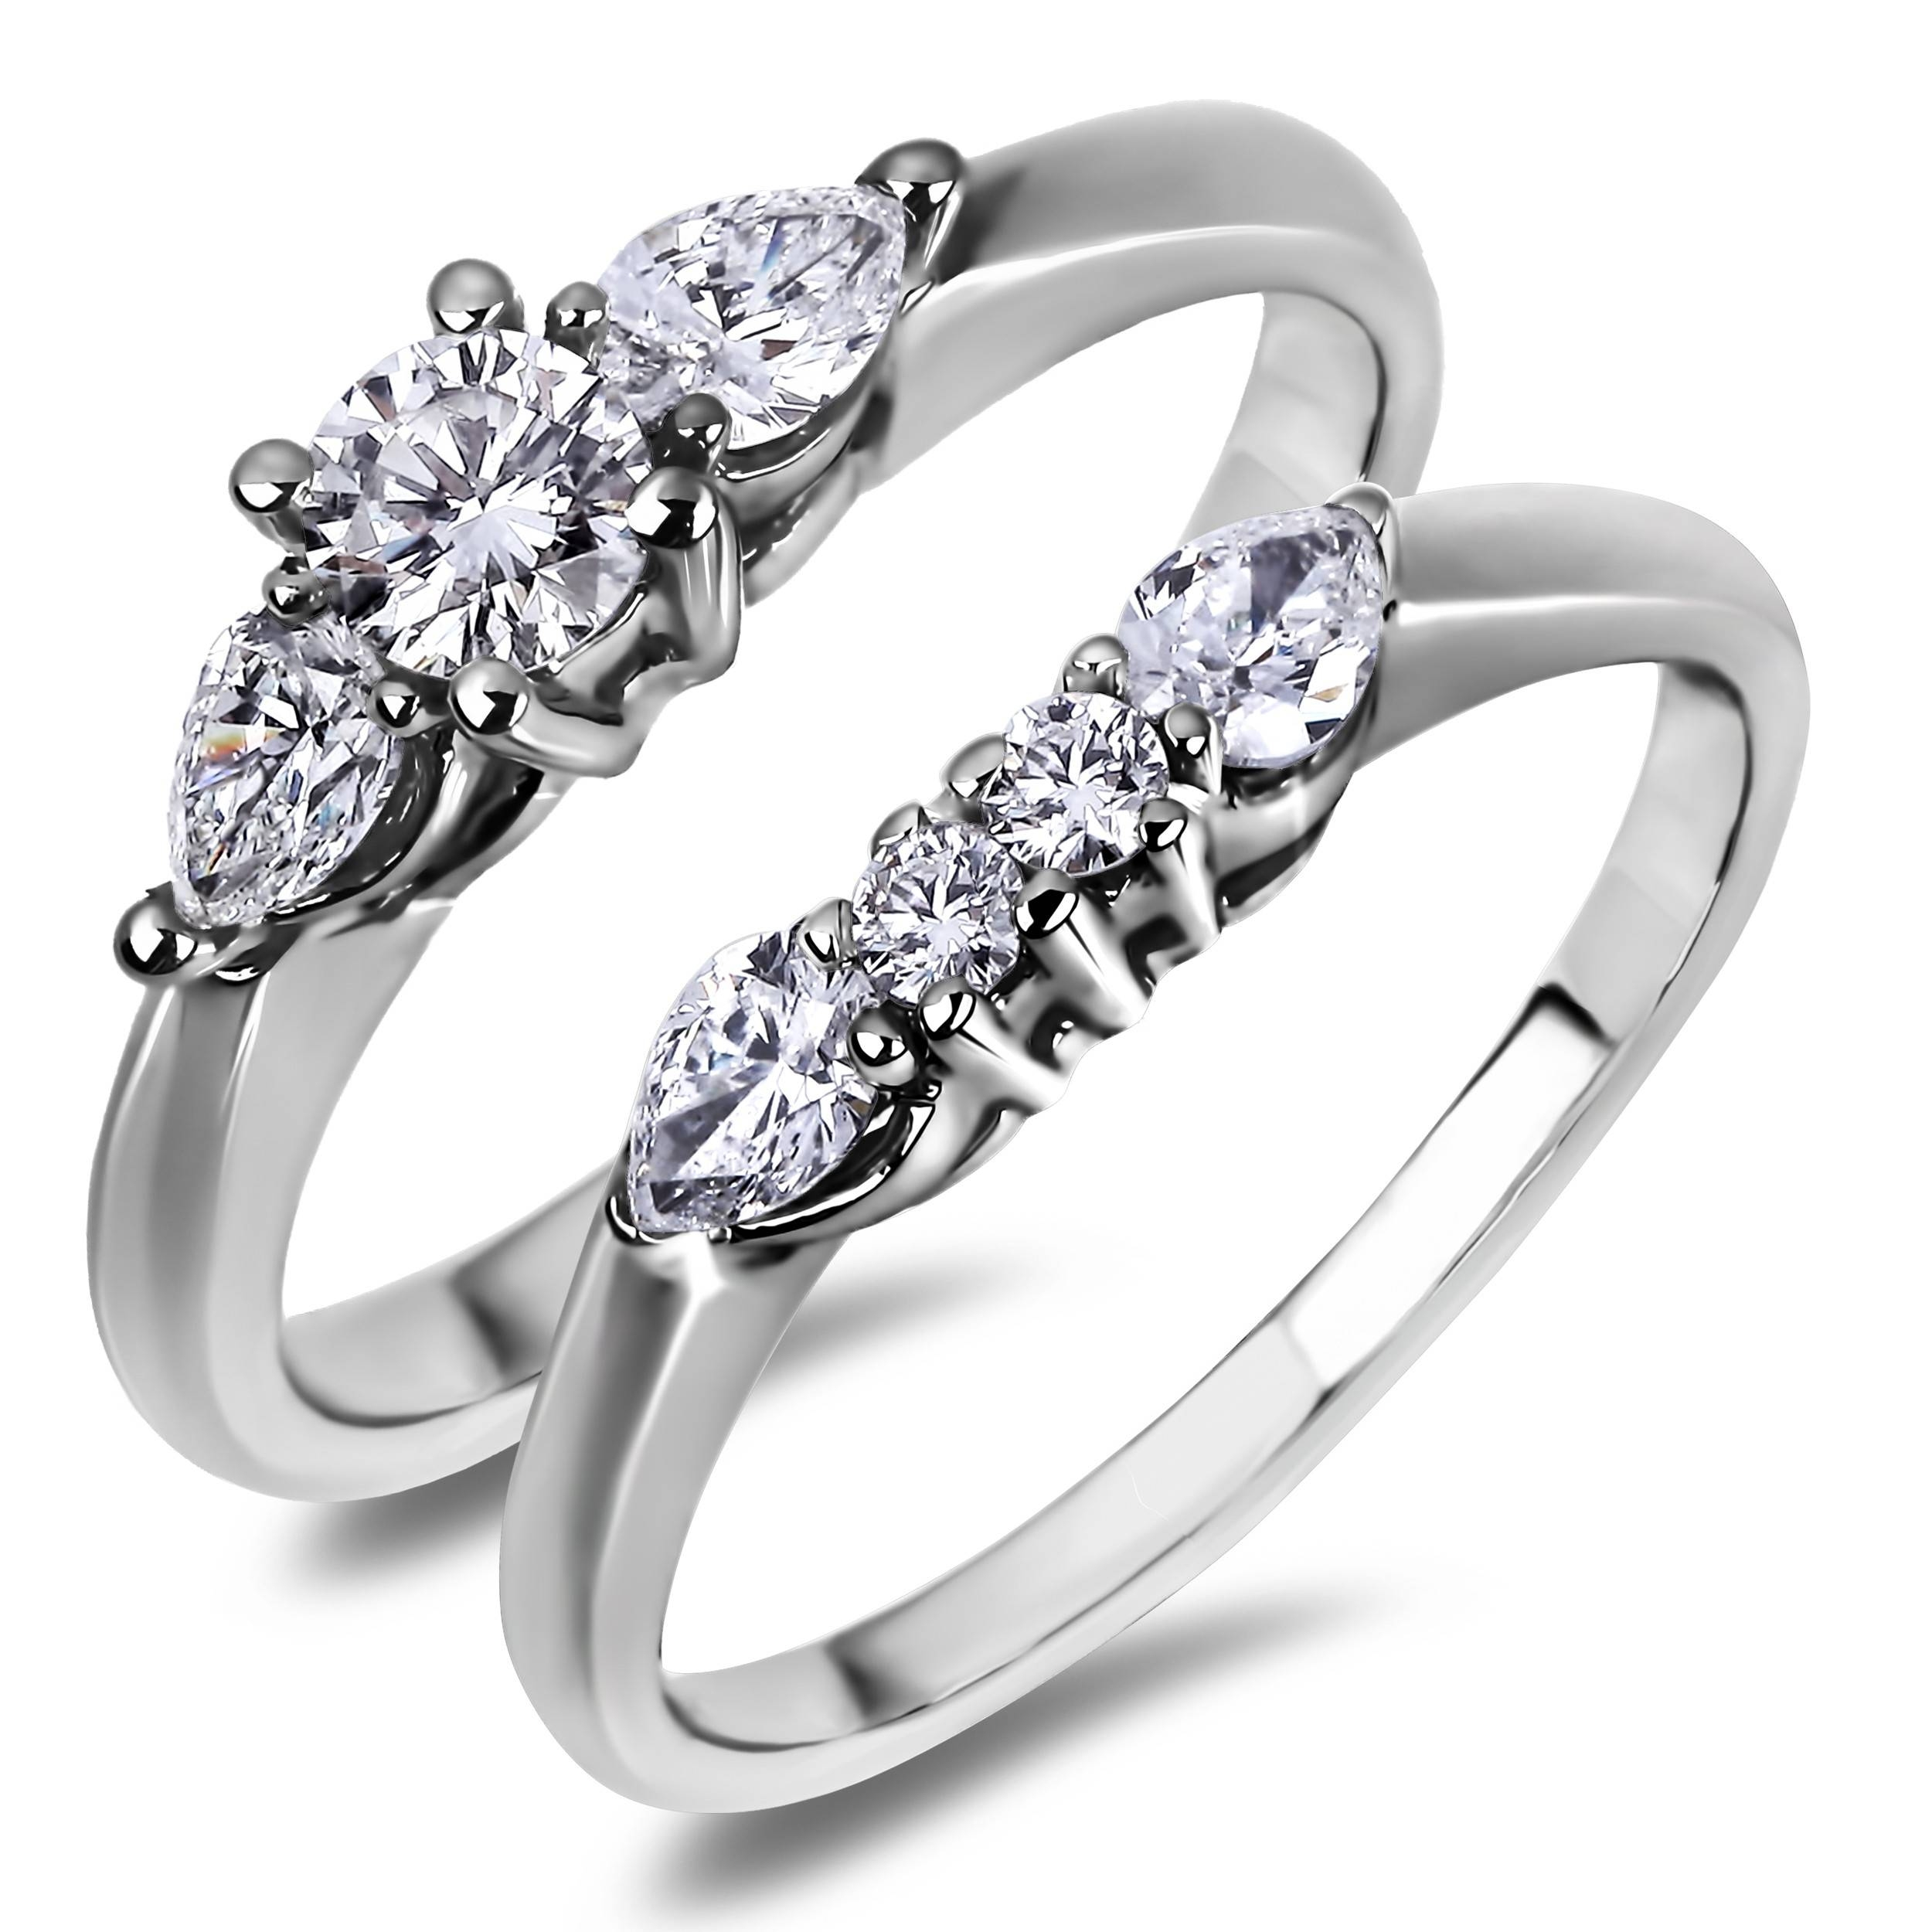 rings bride womenitems of and design wedding ring band groom fabulous engagement fresh